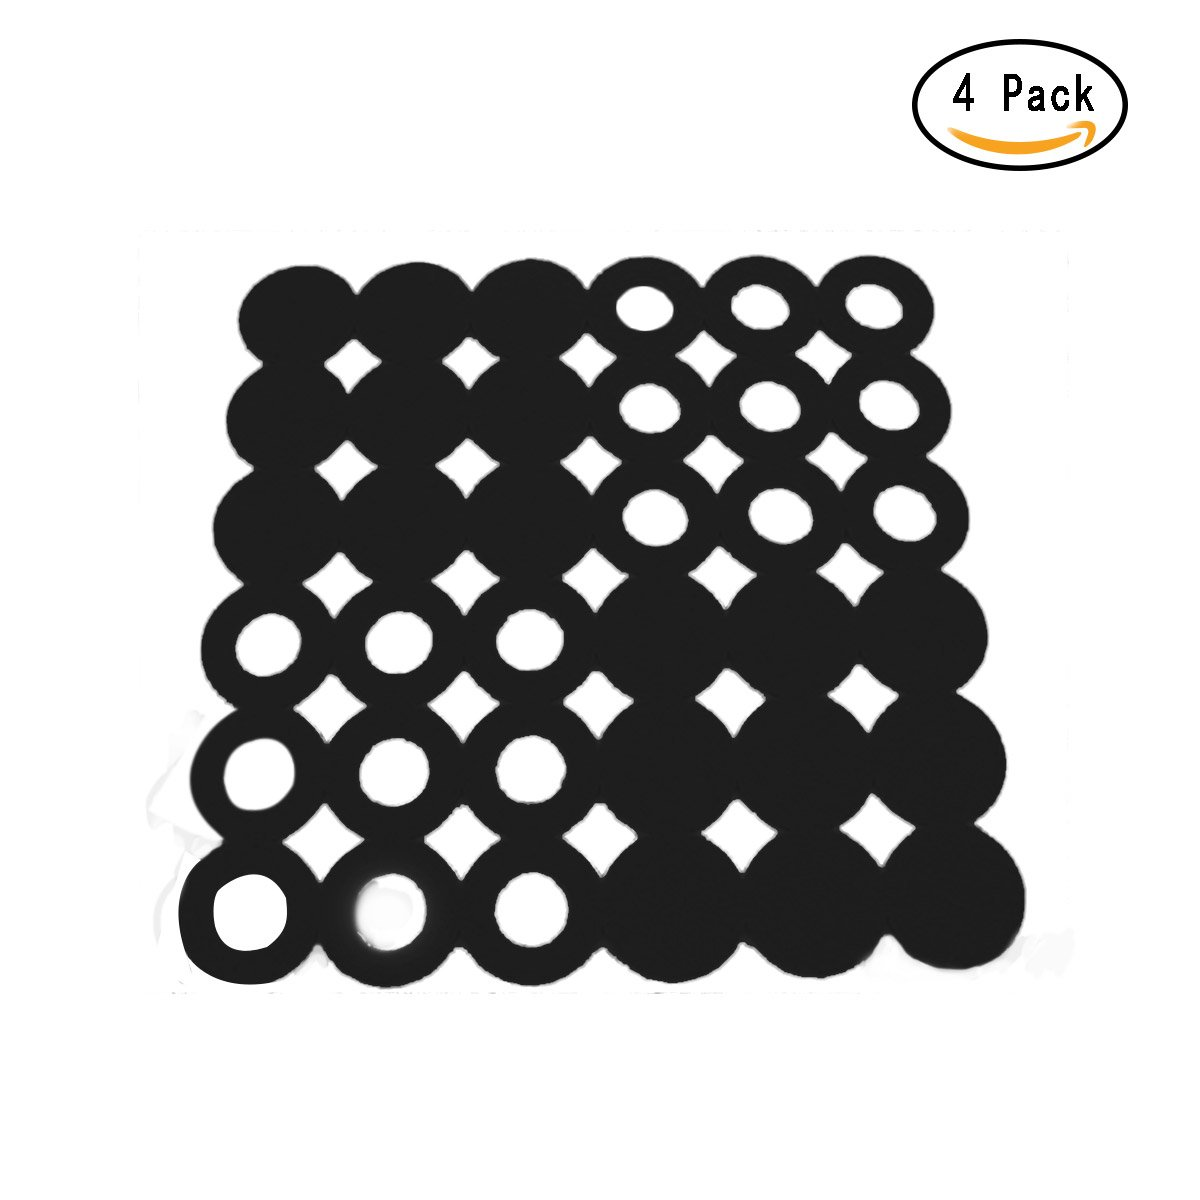 Jeteven Pack of 4 Non-Woven Felt Placemat Table Mat Heat Resistant Dining Table Kitchen Home Black